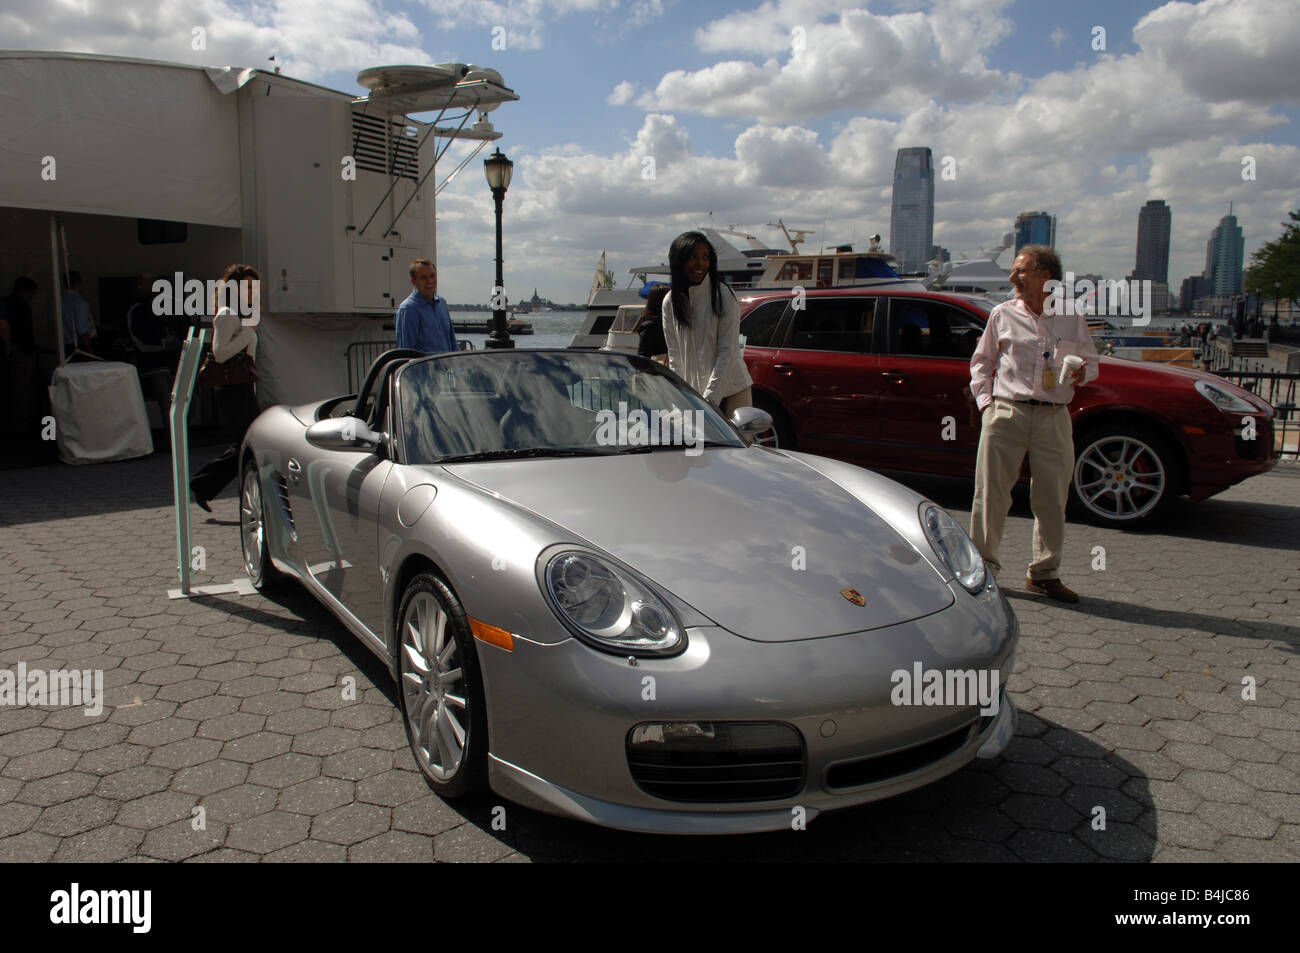 Porsche pictures of porsches : Potential customers inspect Porsches and other luxury vehicles on ...